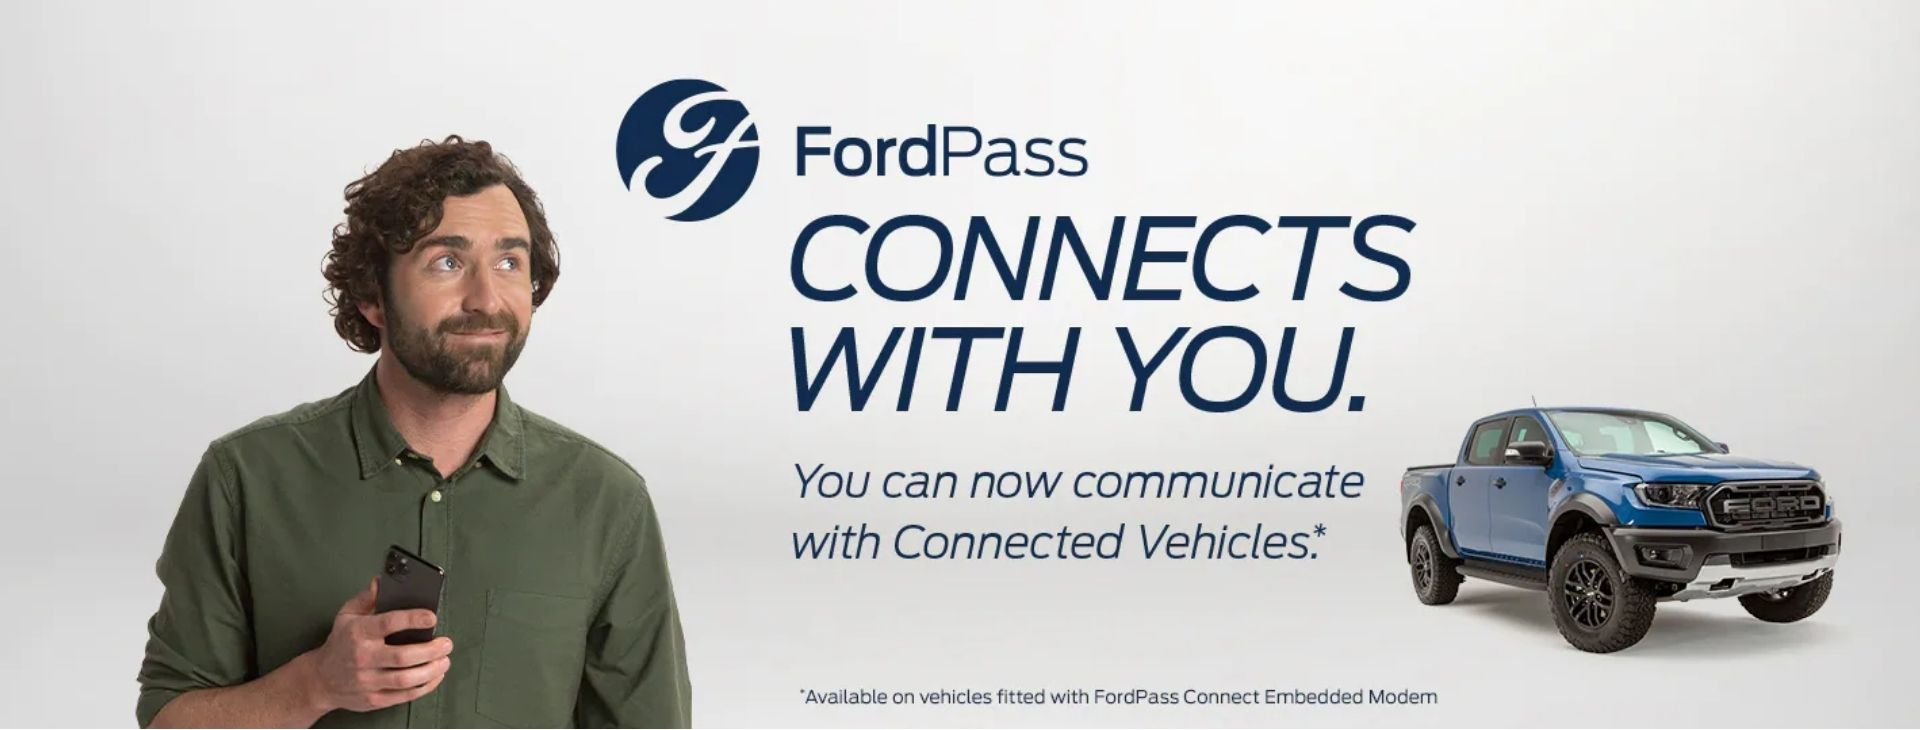 FordPass. Connects With You.